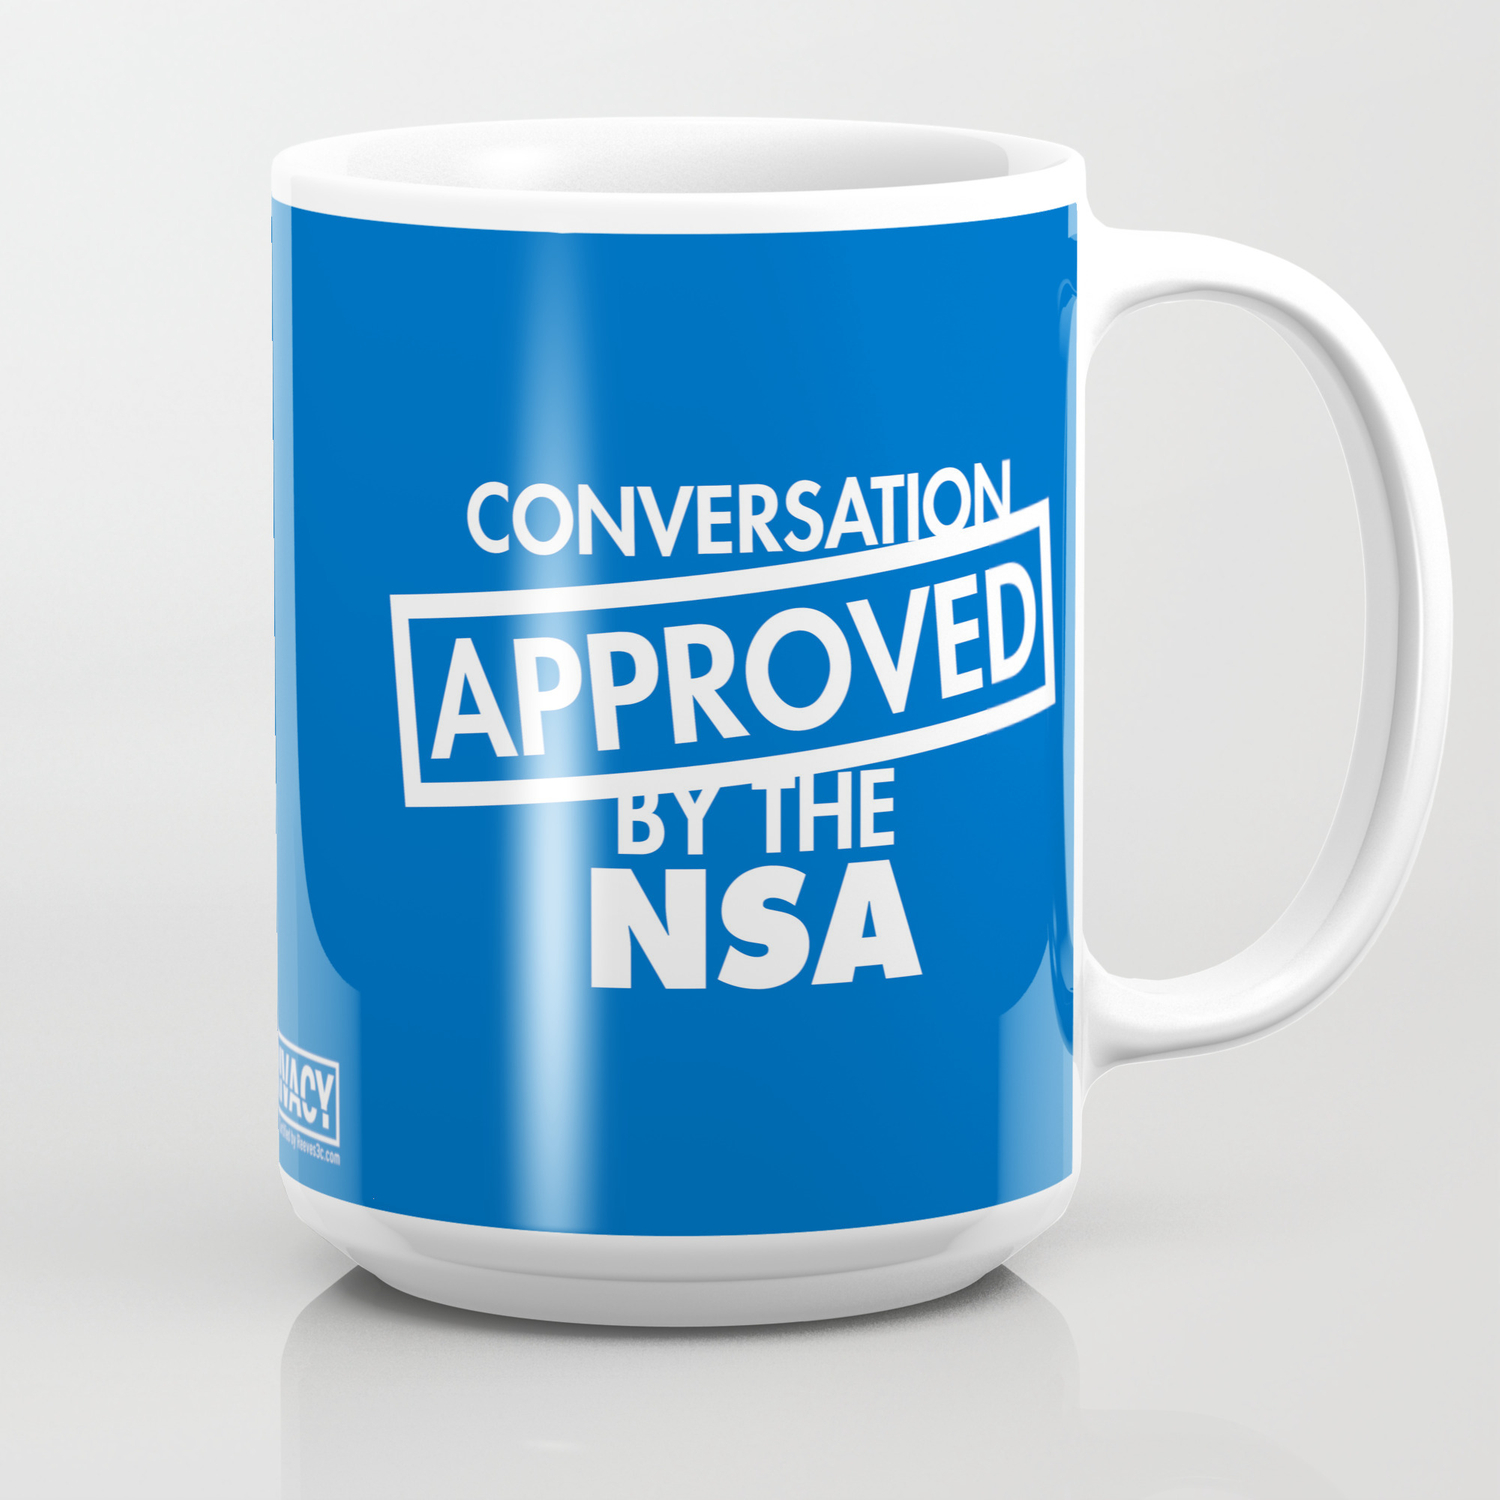 By Mug Reeves3cSociety6 The Nsa Coffee Conversation Approved m8NPwvn0yO